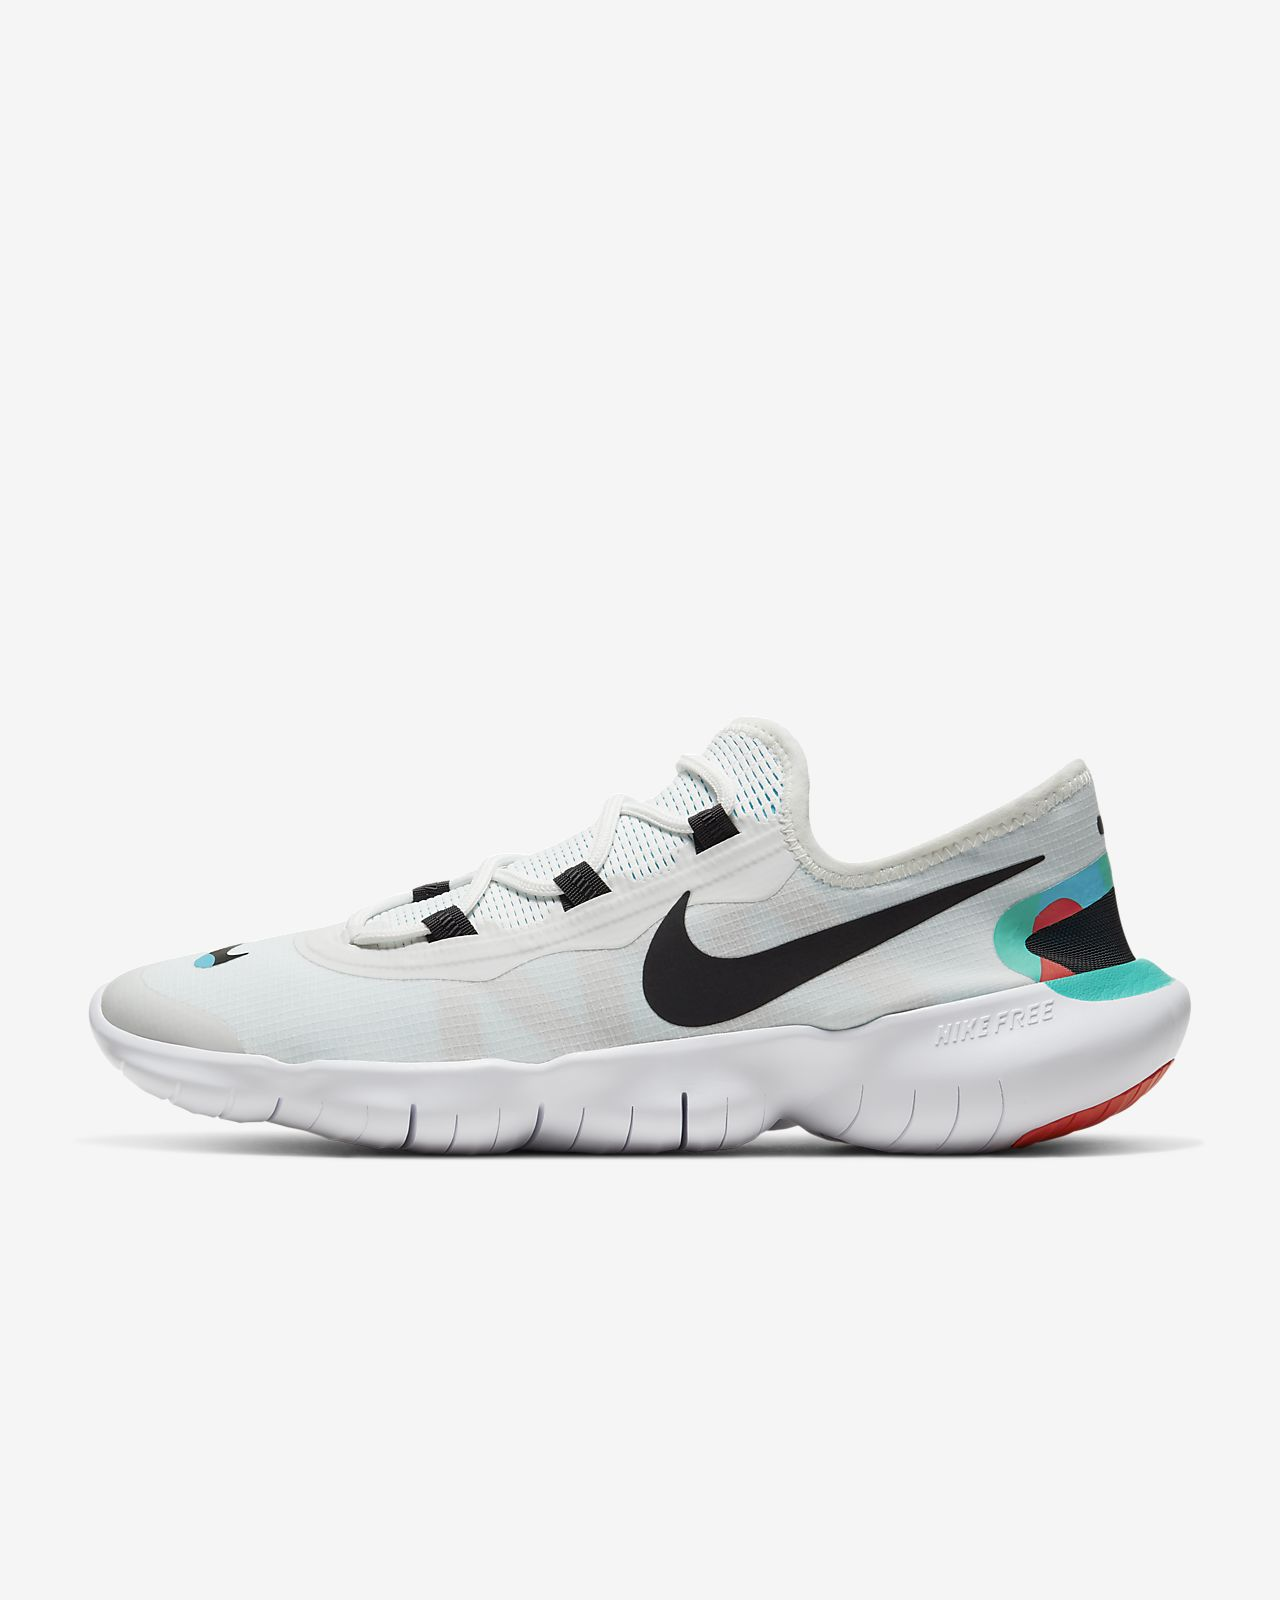 Chaussure de running Nike Free RN 5.0 2020 pour Homme